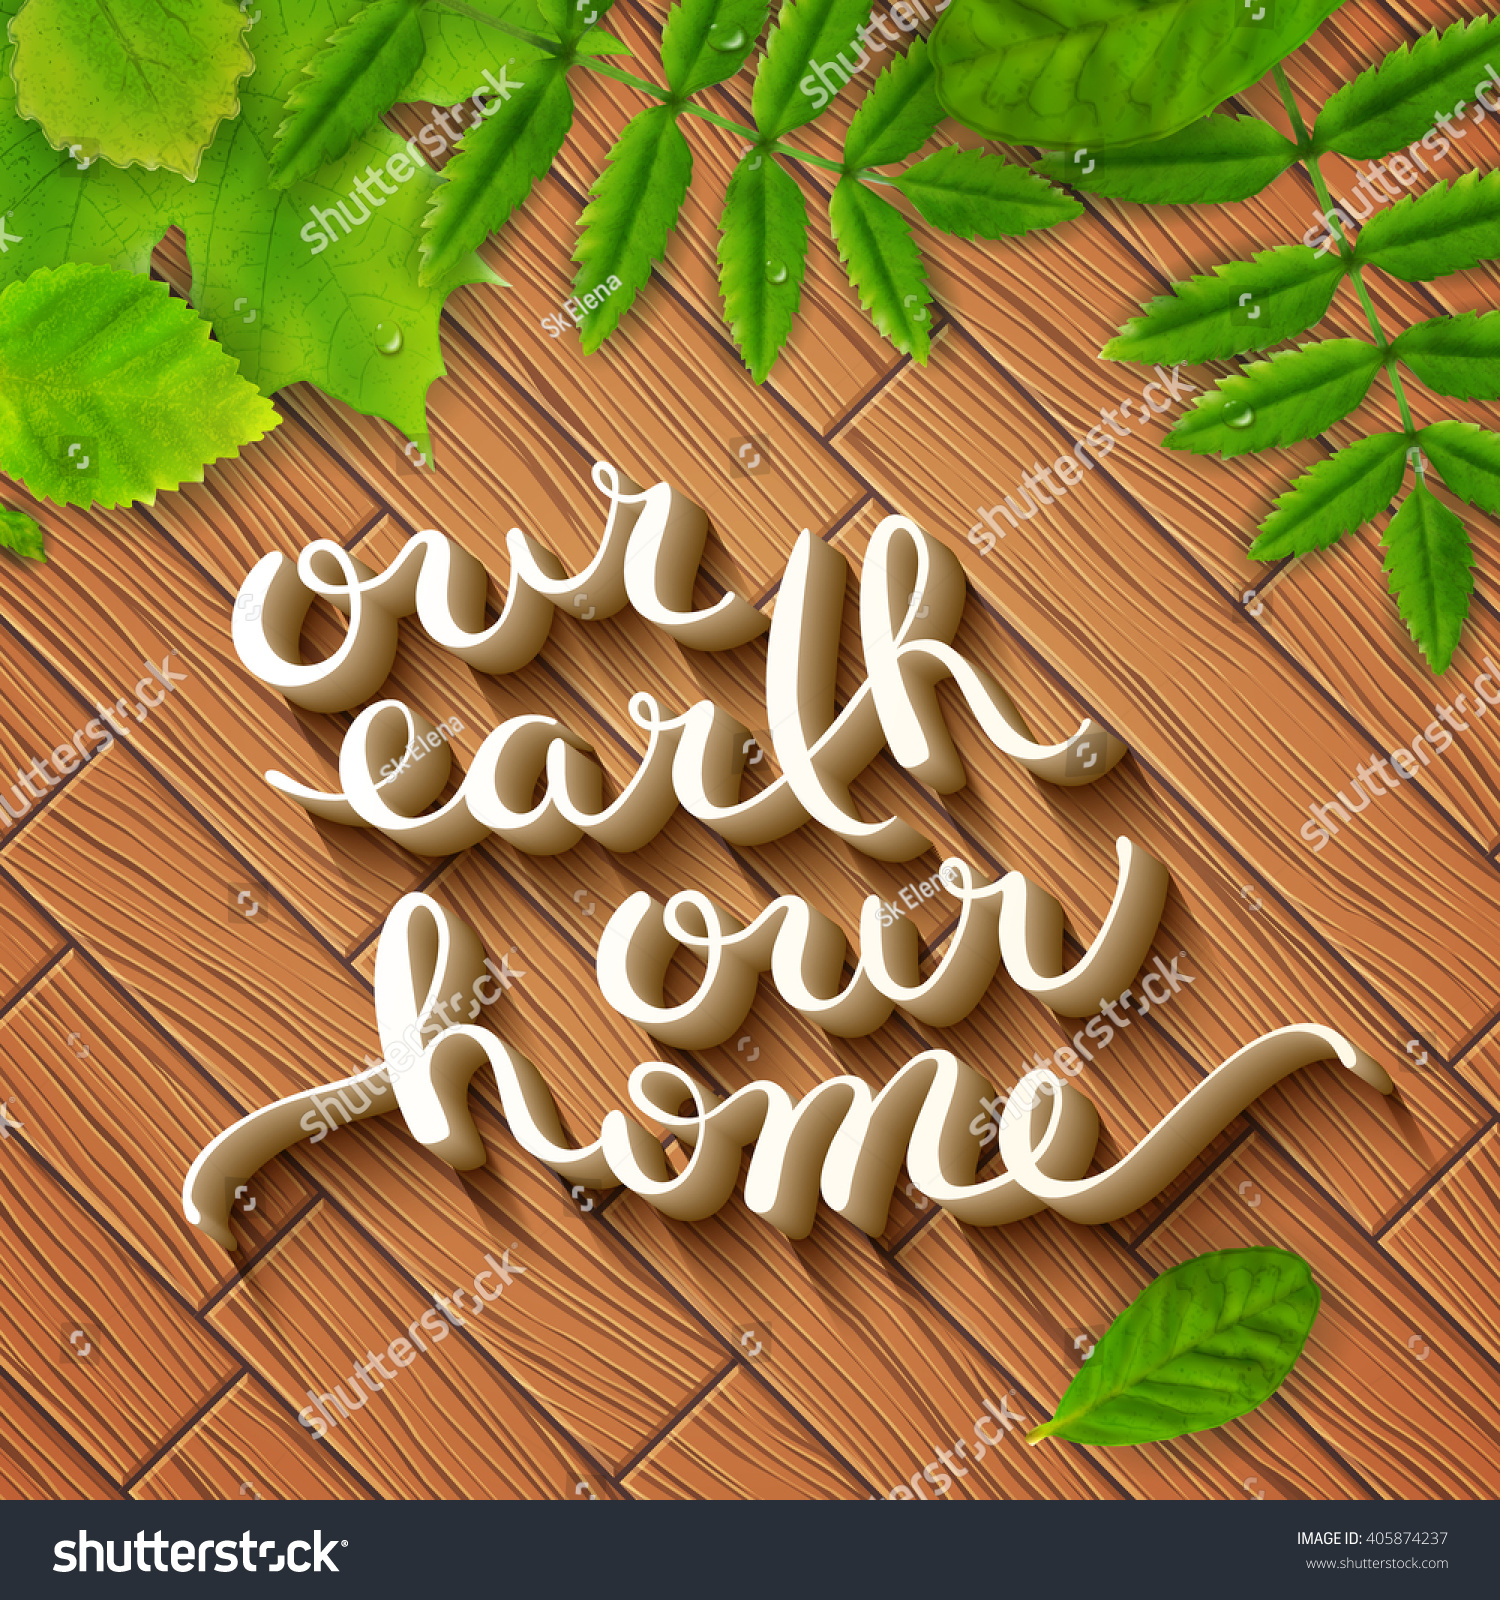 Poster design handmade - Our Earth Our Home Handmade Calligraphy Illustration Typographic Design Poster For Earth Day